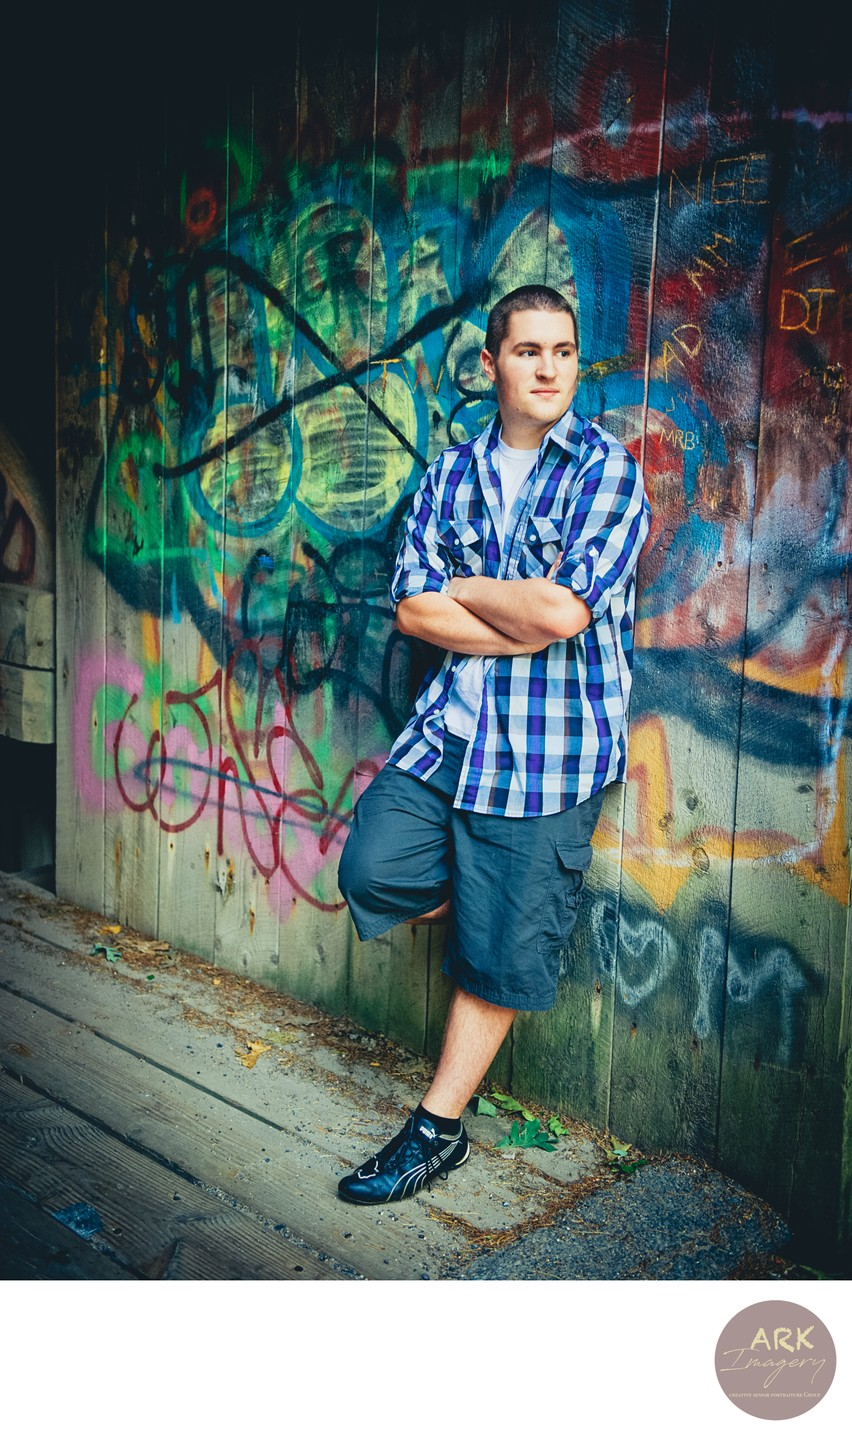 Maine High School Senior Photos with Graffiti